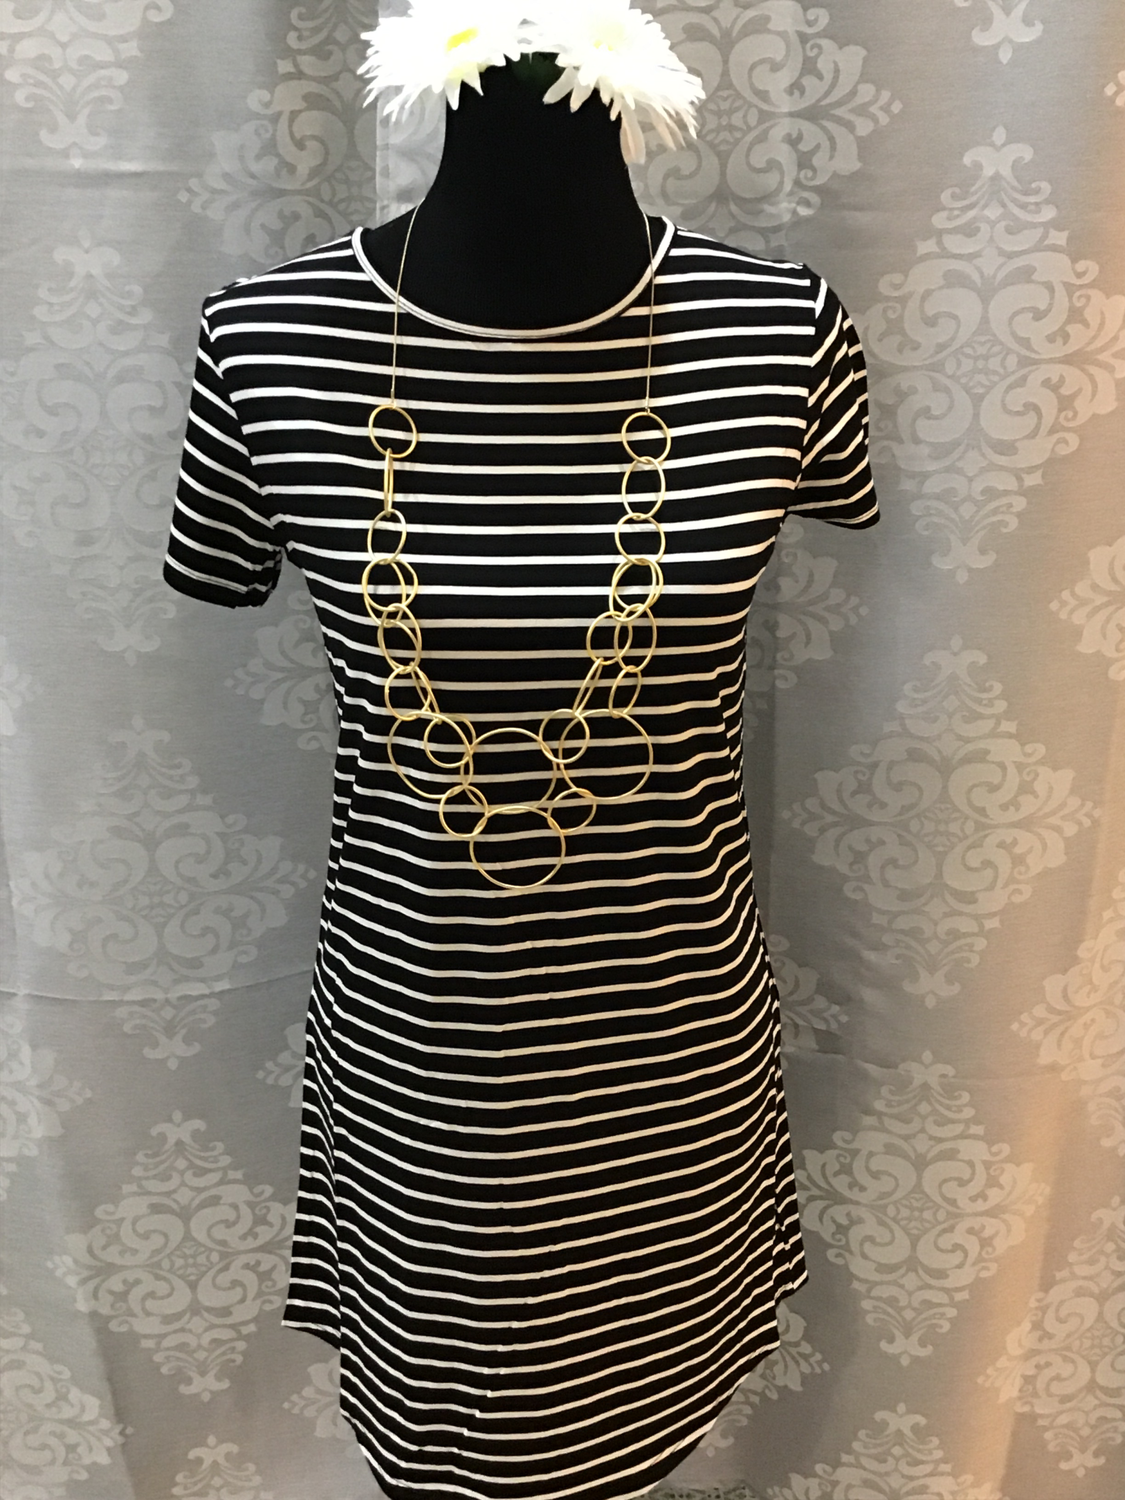 Black with white striped T-shirt dress